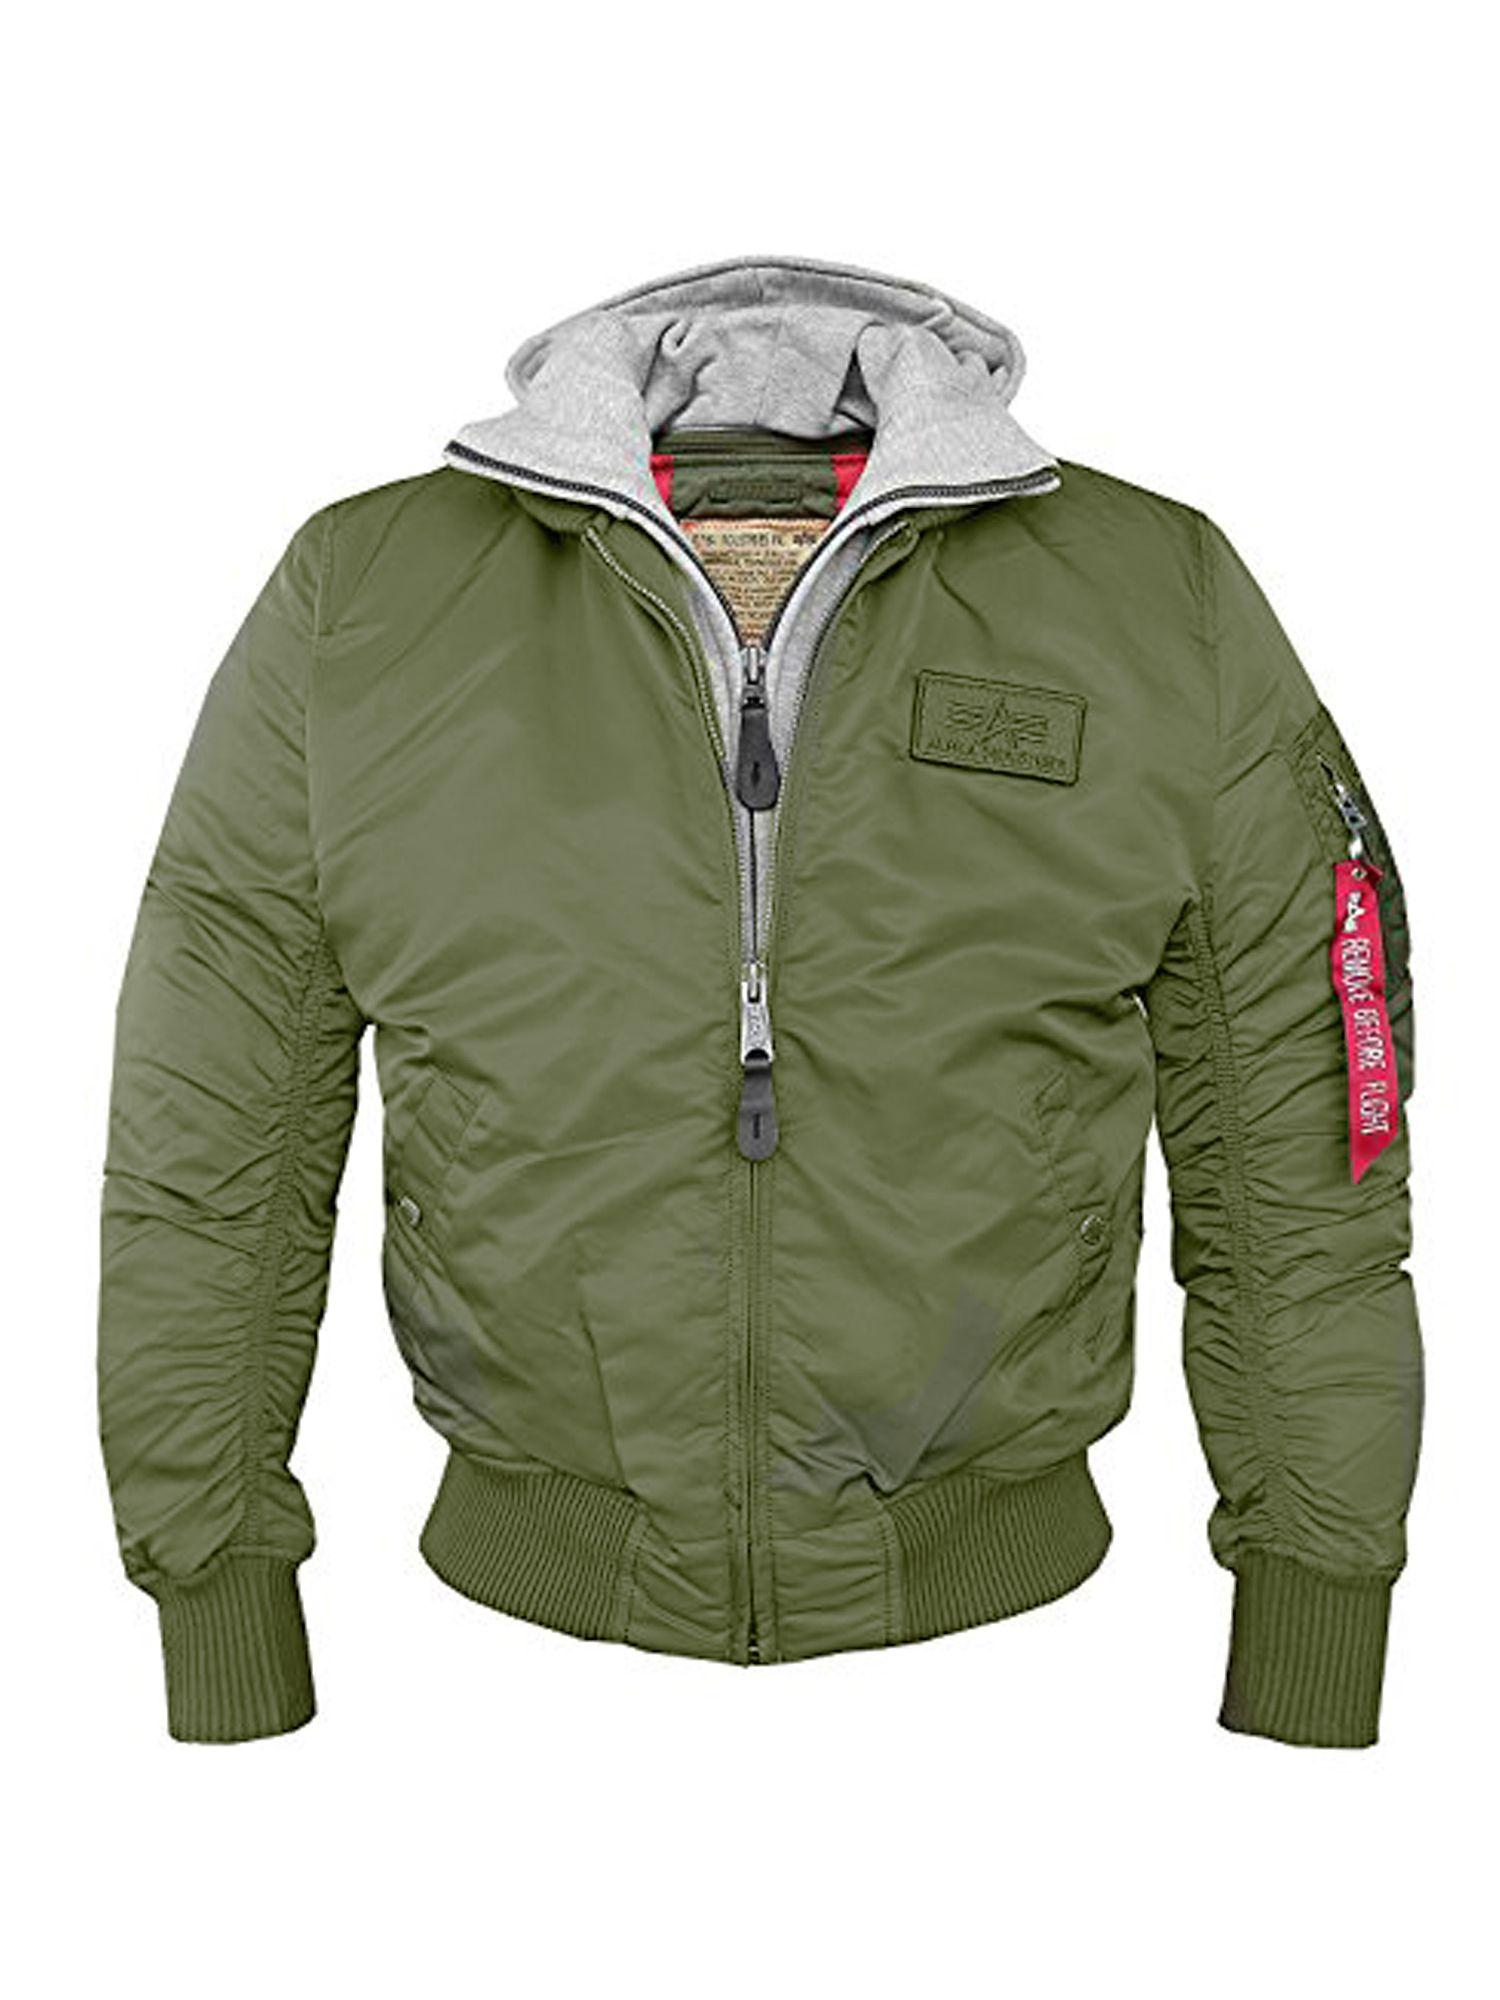 alpha industries ma 1 d tec jacket in green for men lyst. Black Bedroom Furniture Sets. Home Design Ideas